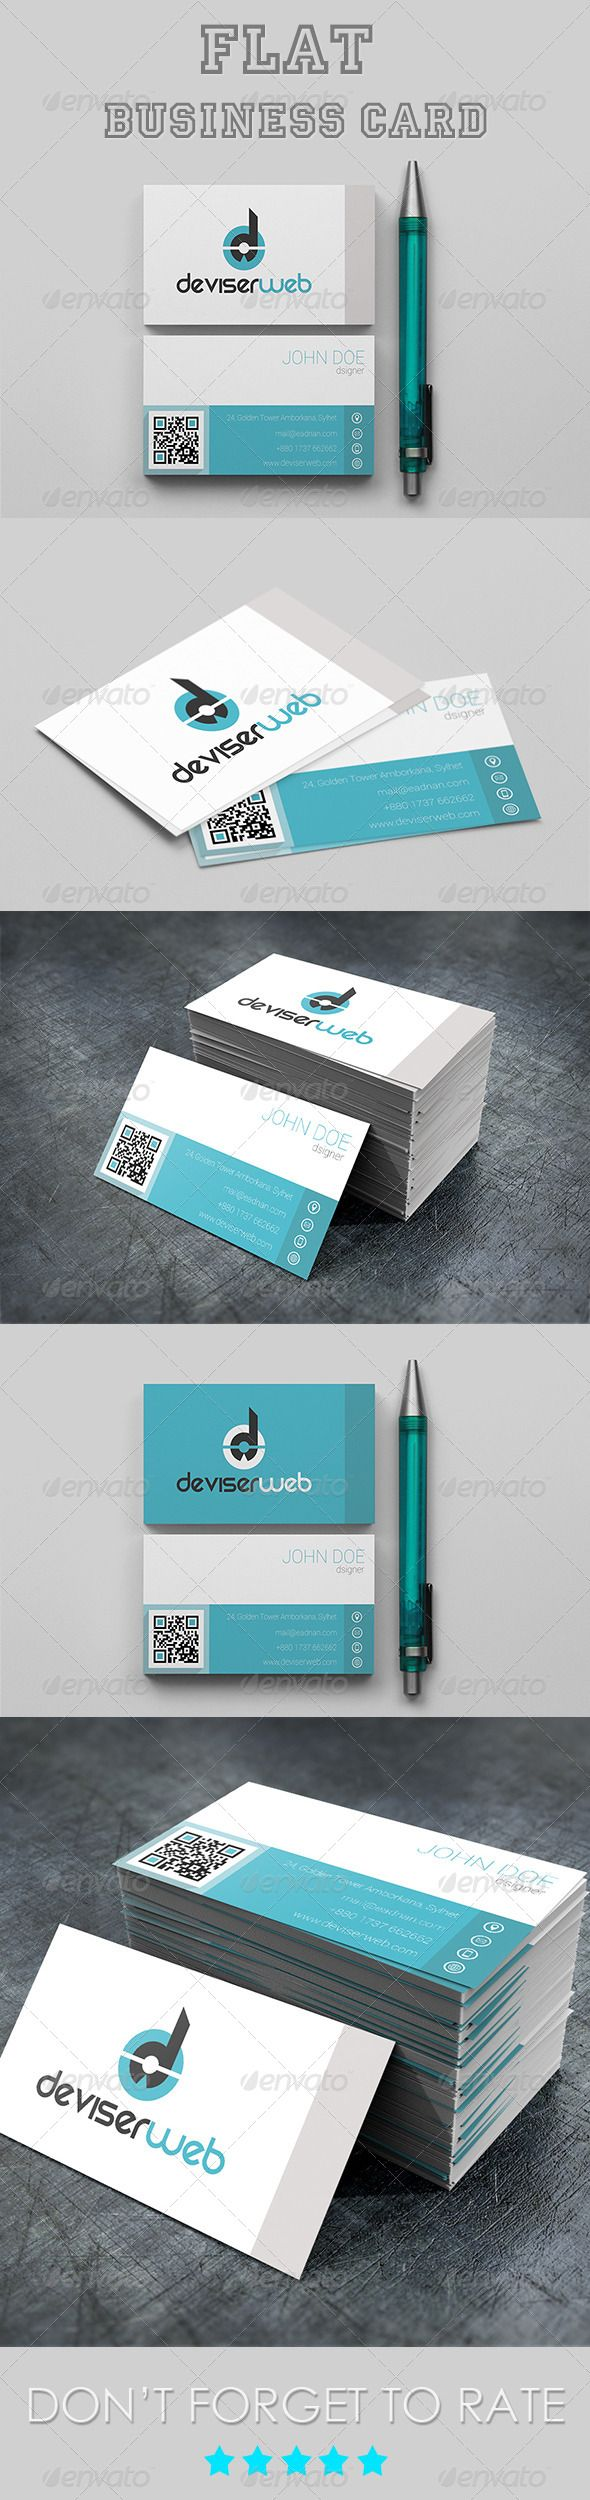 Pin By HAilp On Business Cards PSD With QR Code